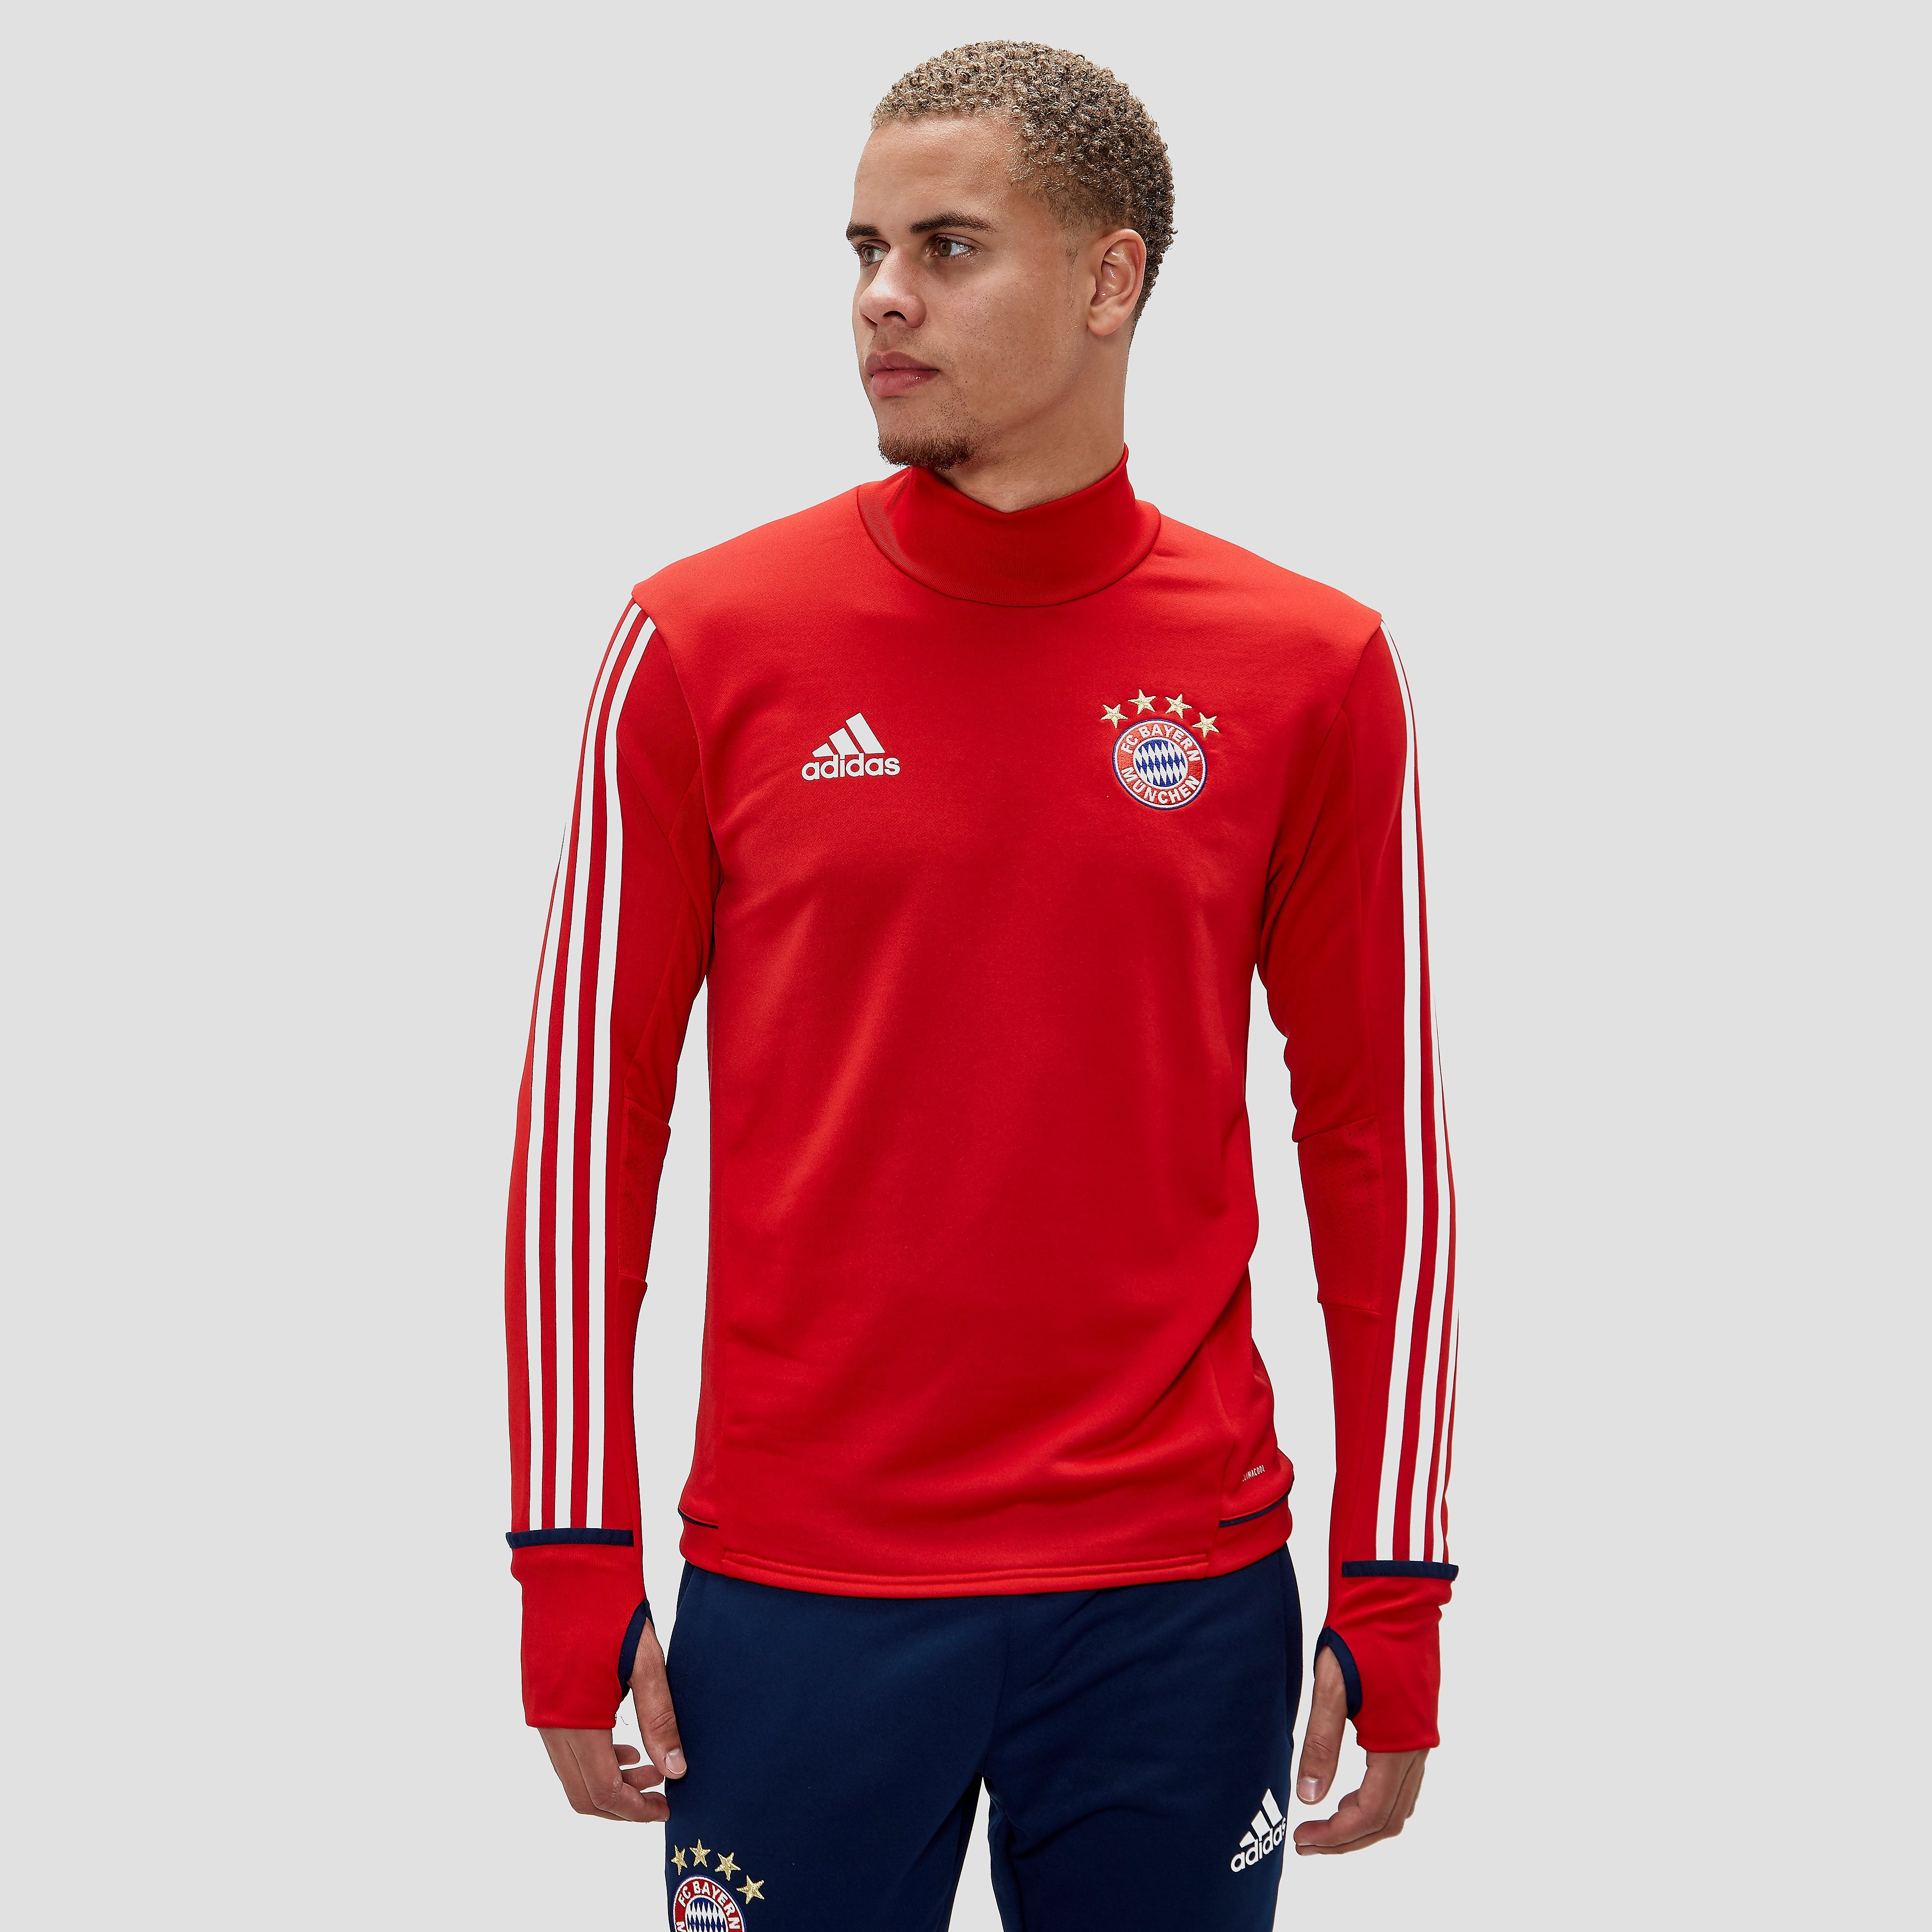 ADIDAS FC BAYERN MÜNCHEN TRAININGSTOP 17/18 ROOD/WIT HEREN